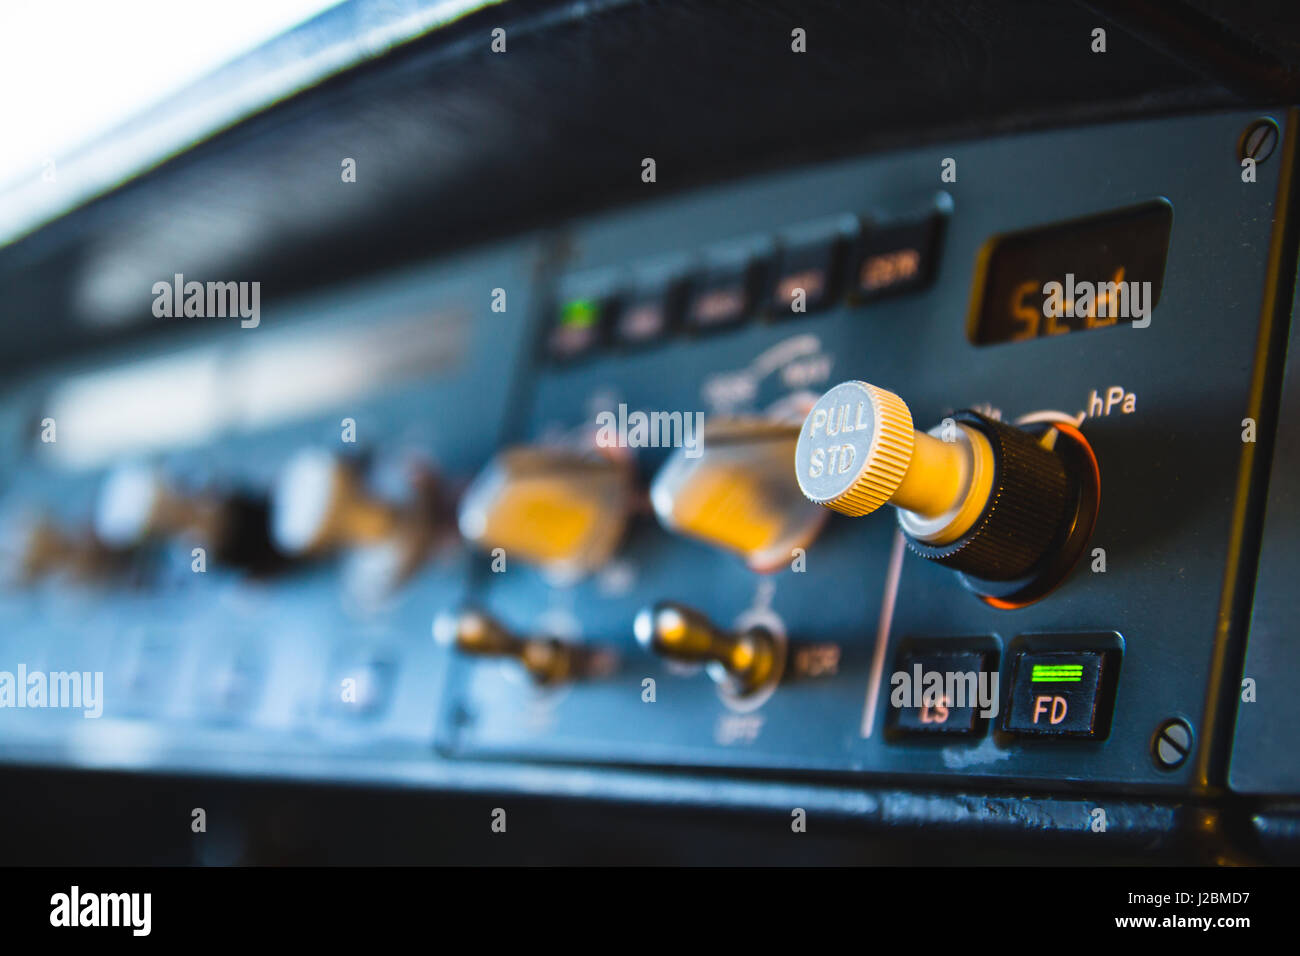 Airbus A320 autopilot instrument panel and controls. Flight Control Unit (FCU) with knobs, dials and buttons. - Stock Image